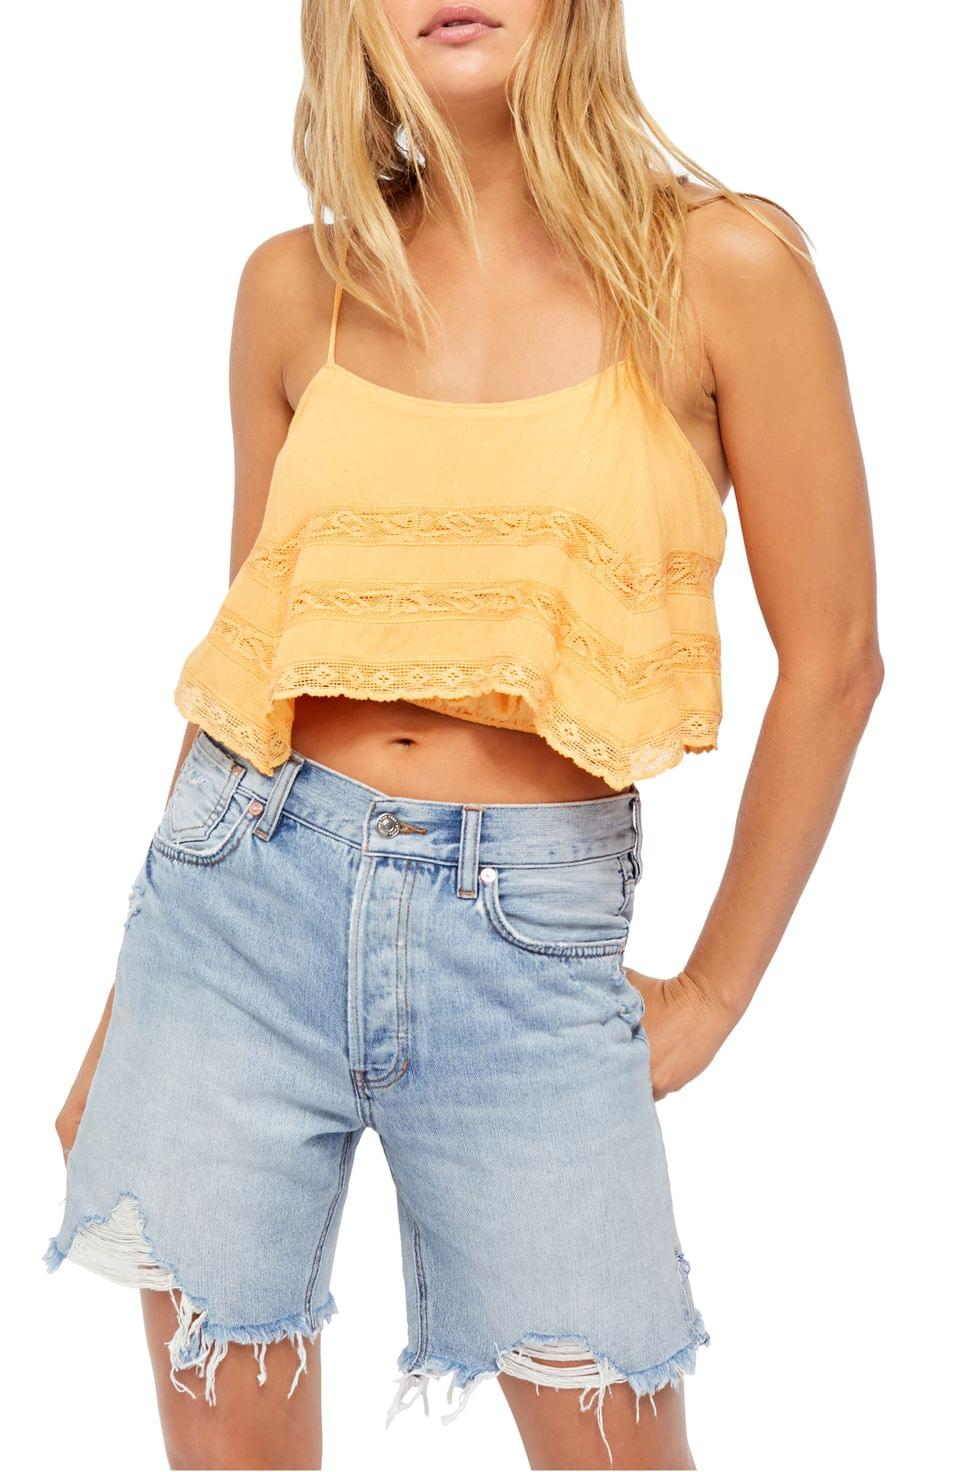 Women's Free People Home Again Crop Camisole